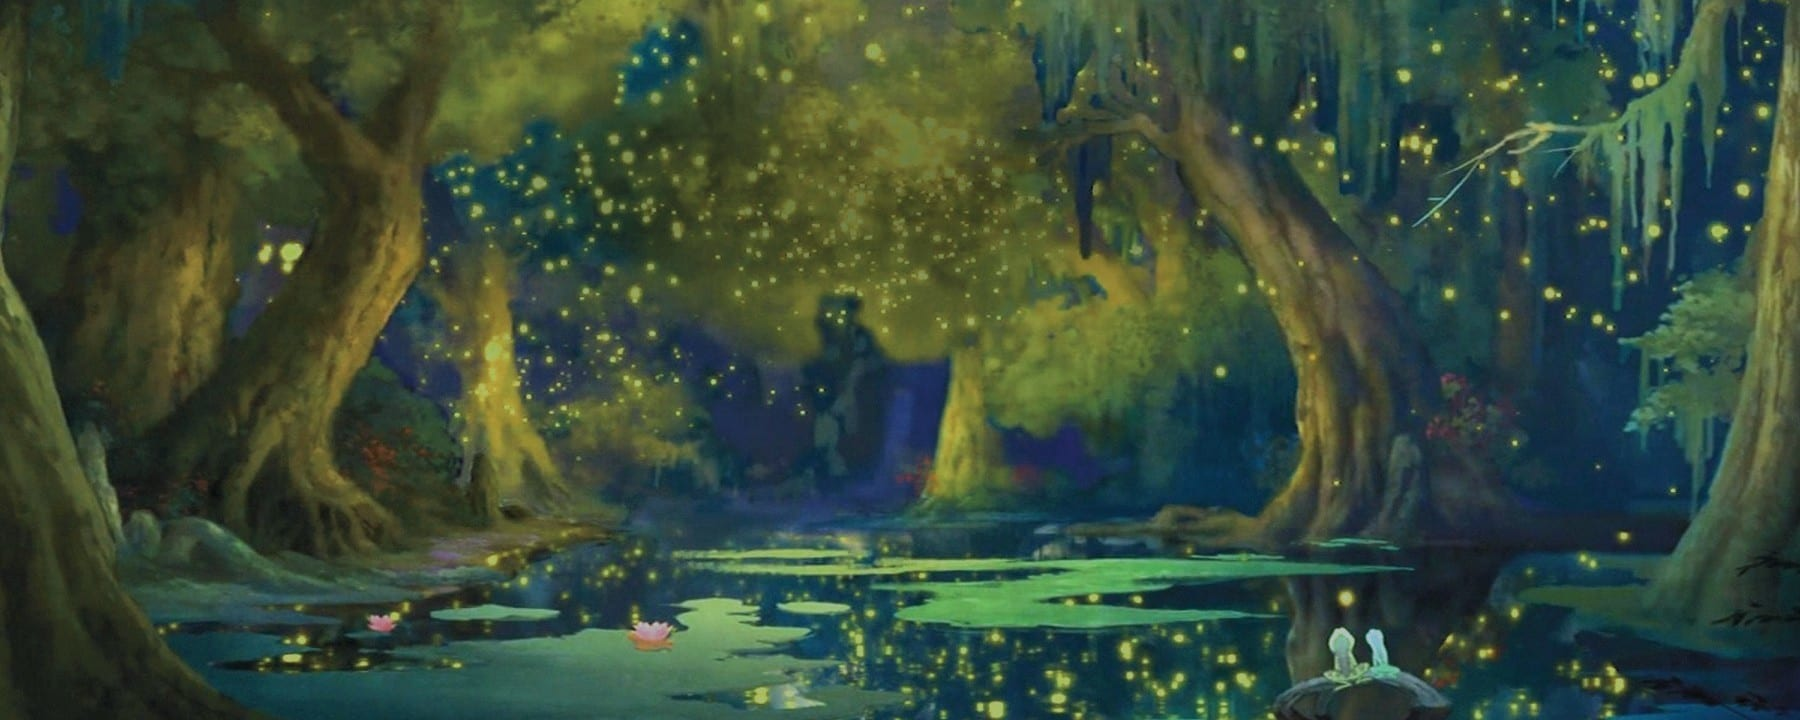 bayou from the princess and the frog